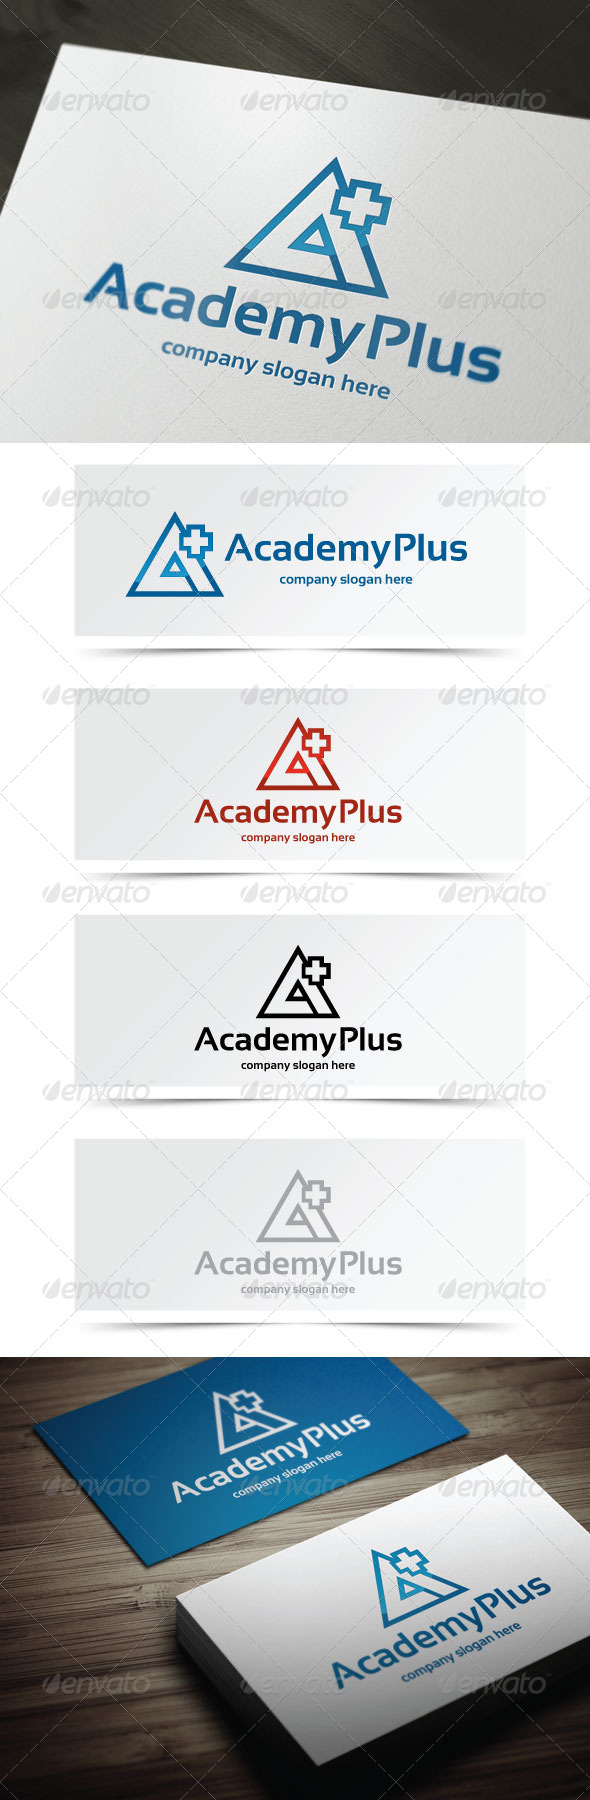 GraphicRiver Academy Plus 5404401